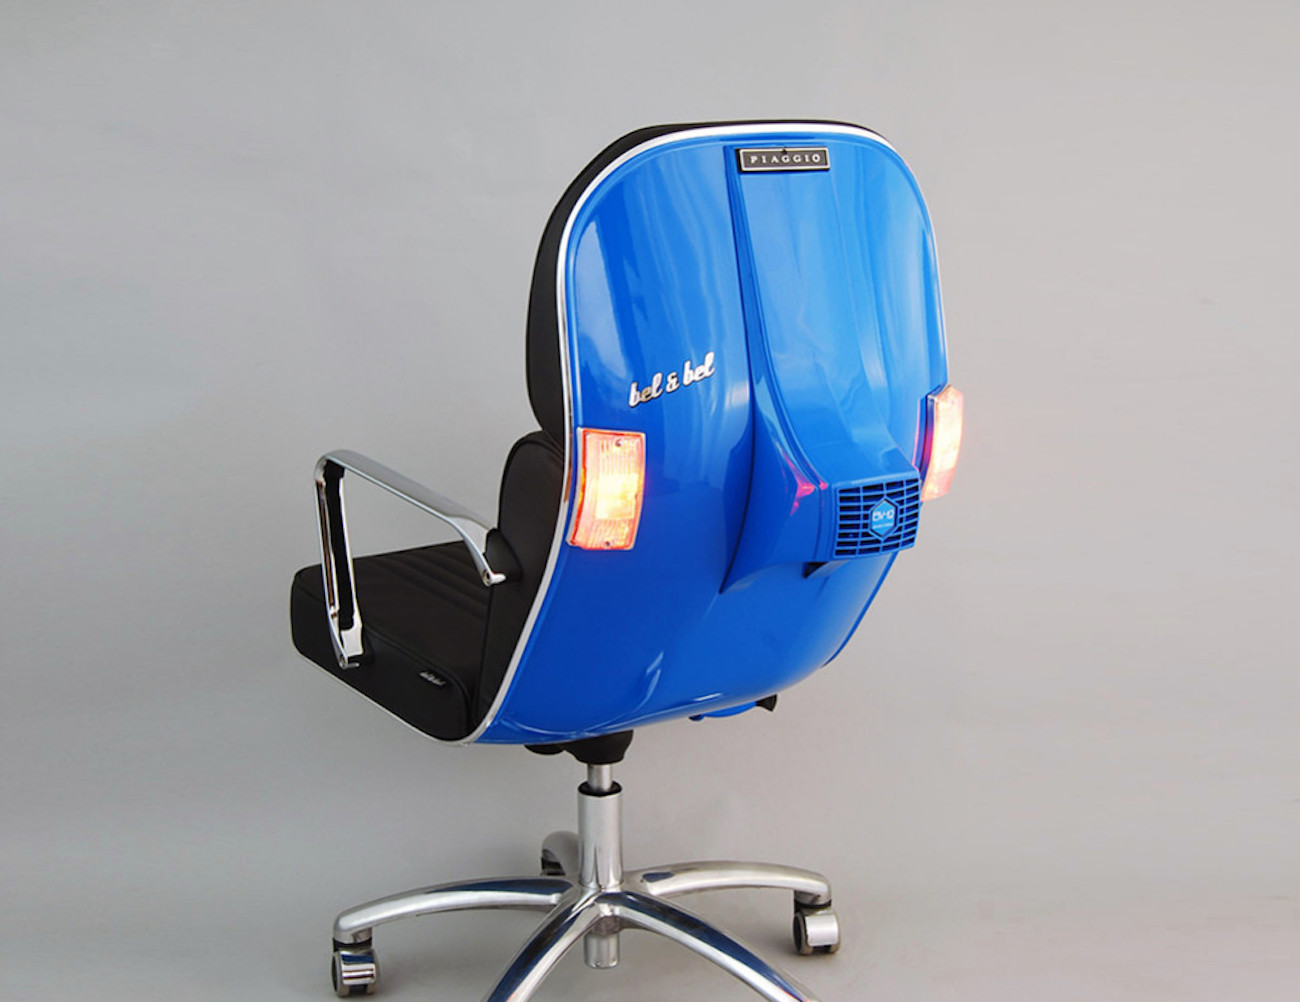 vespa-bv-12-chair-01